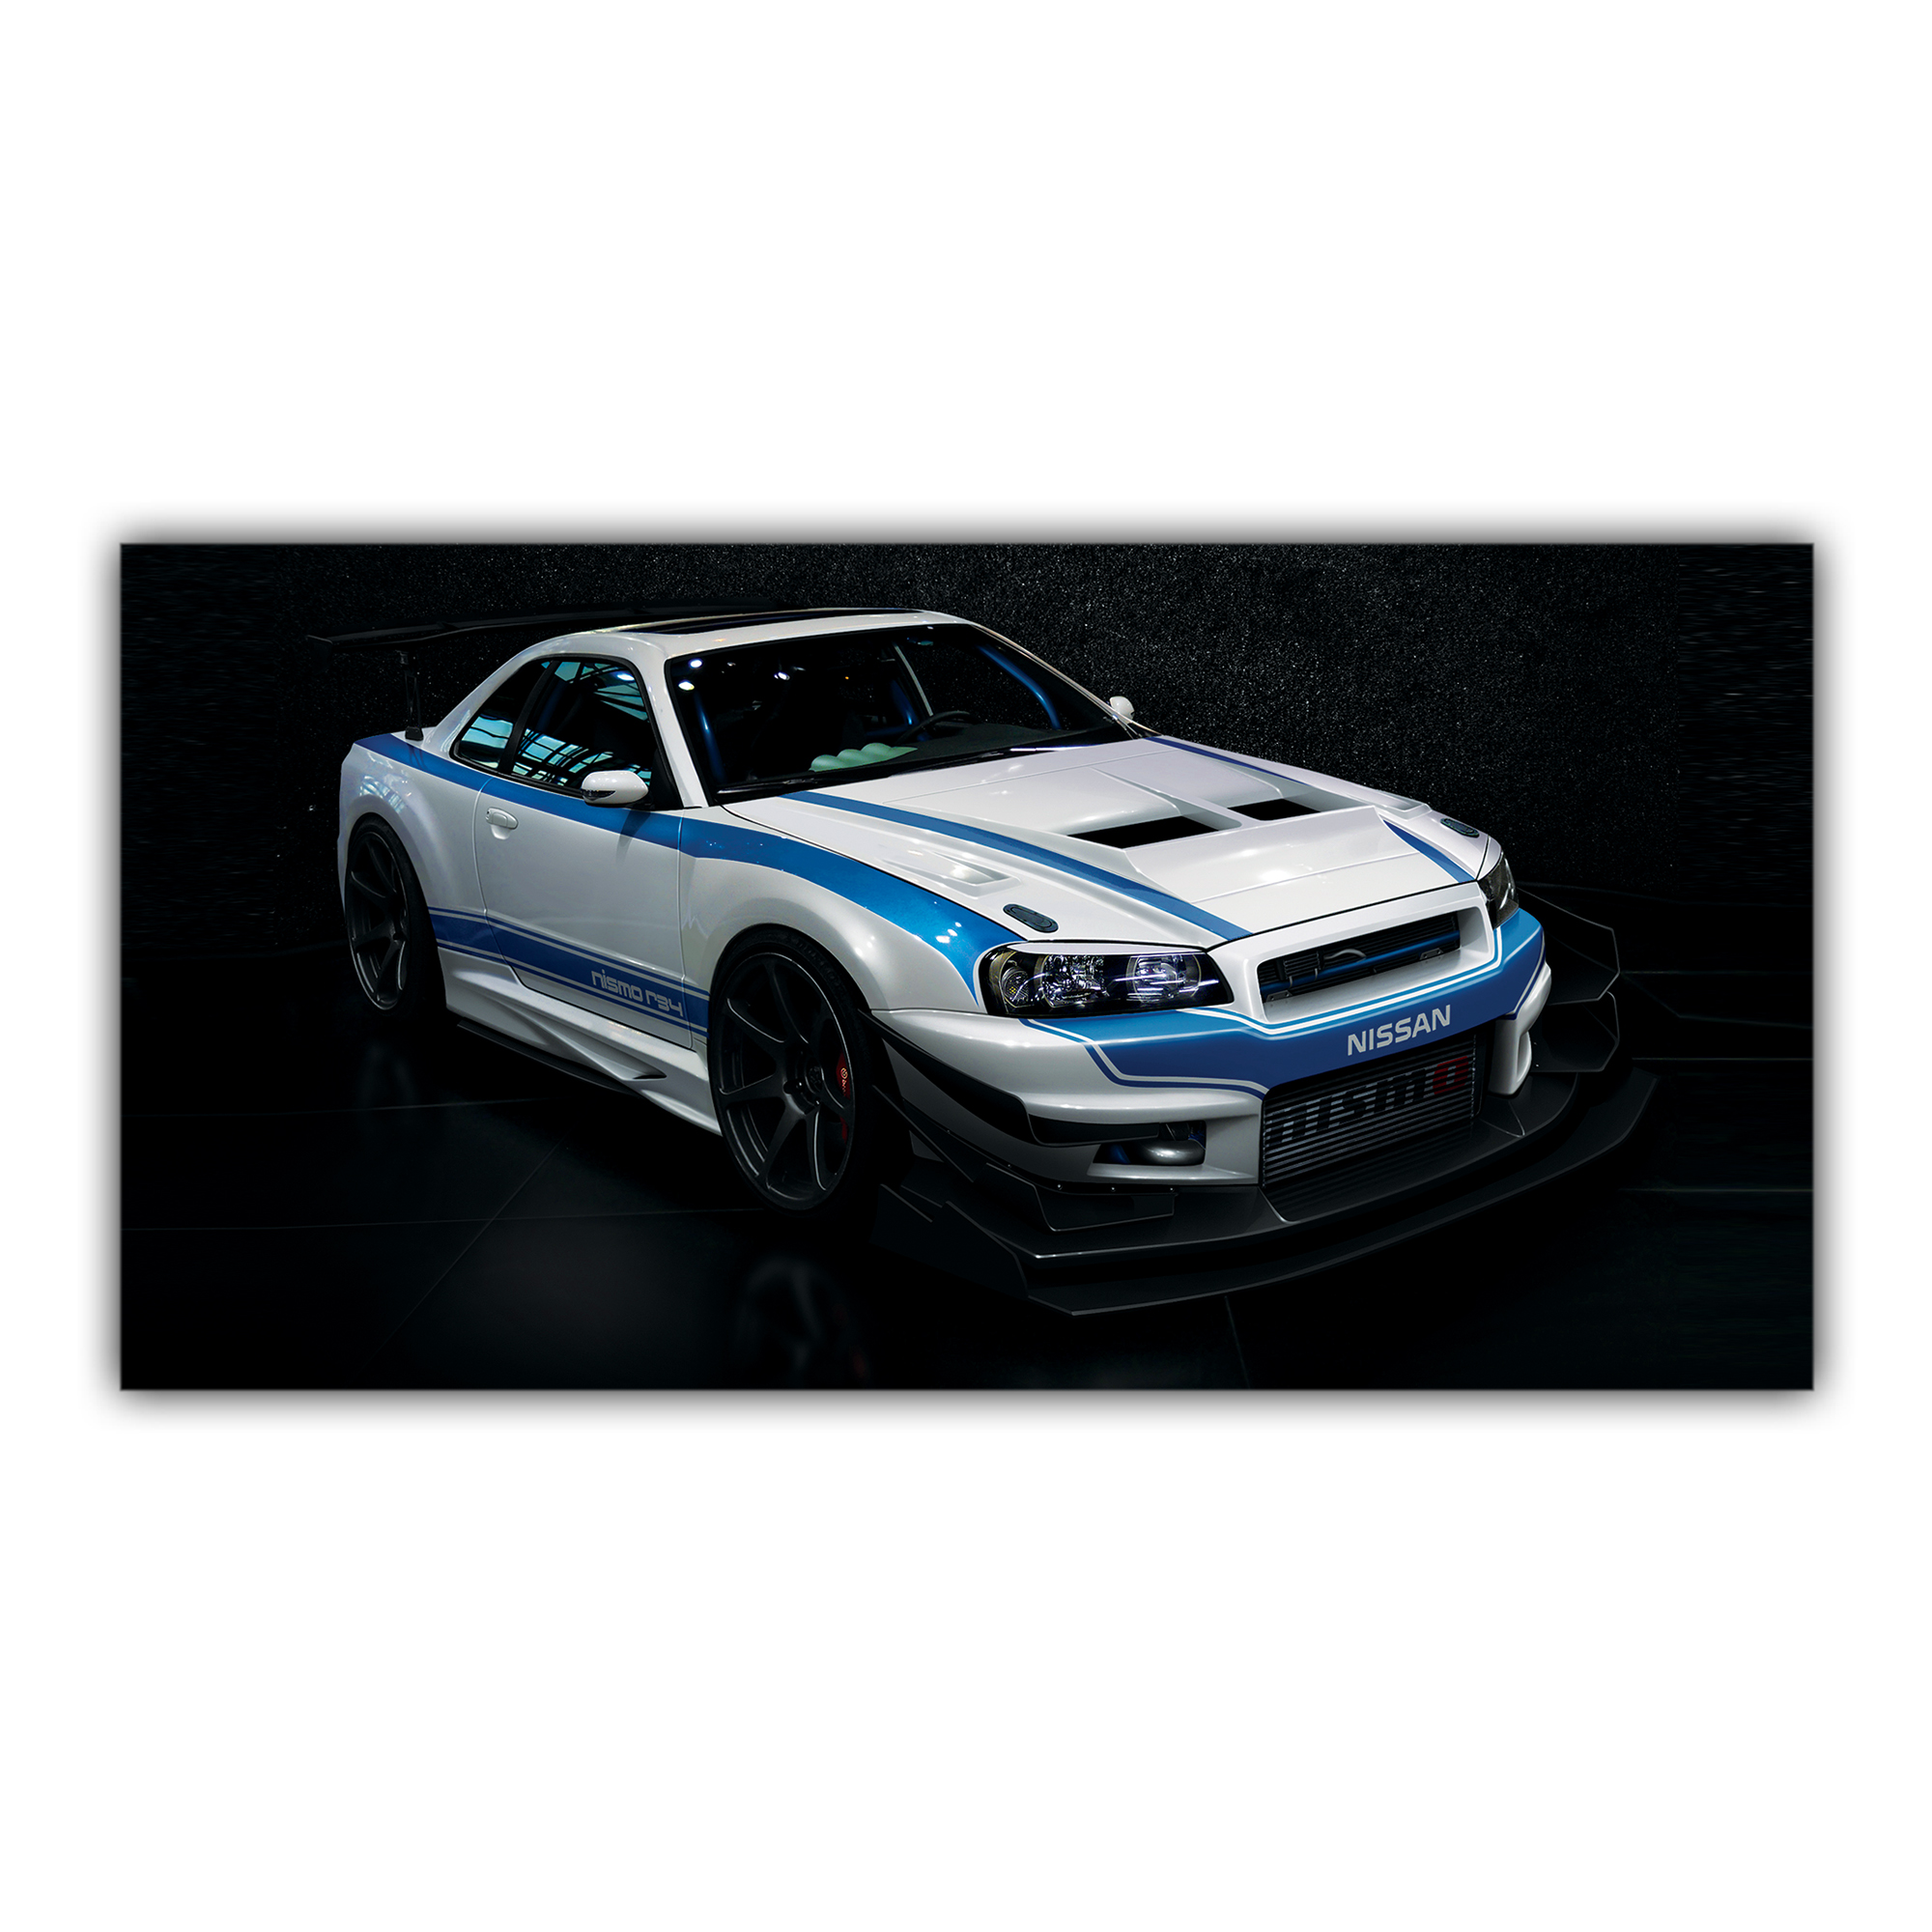 Nissan Skyline GT-R Fast and Furious